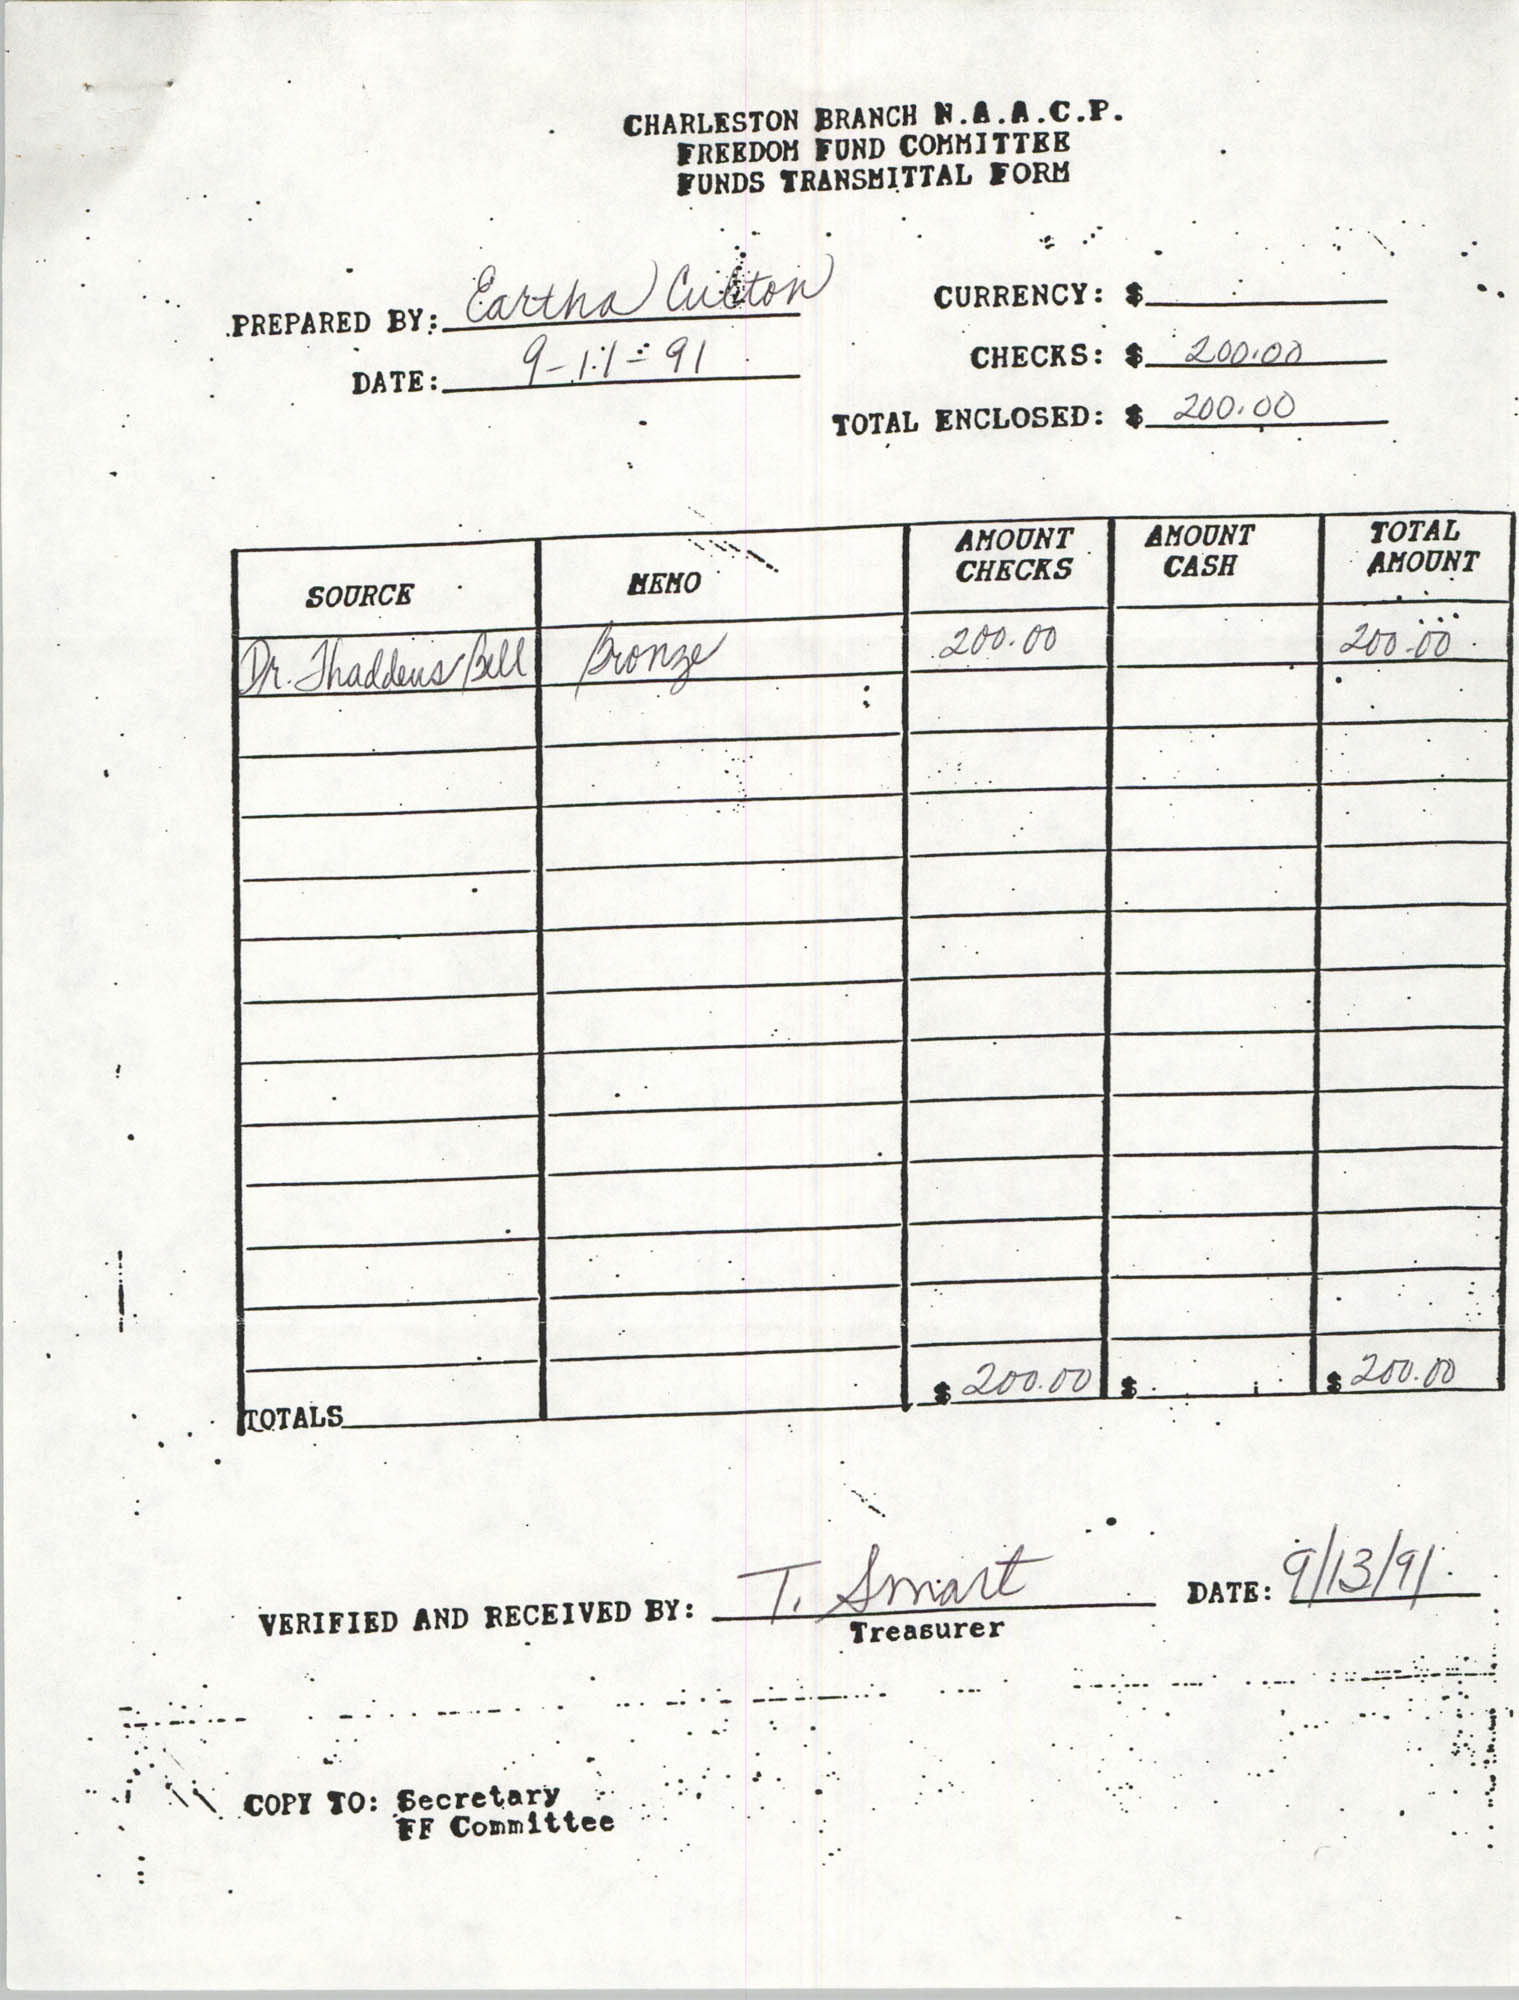 Charleston Branch of the NAACP Funds Transmittal Forms, September 1991, Page 31